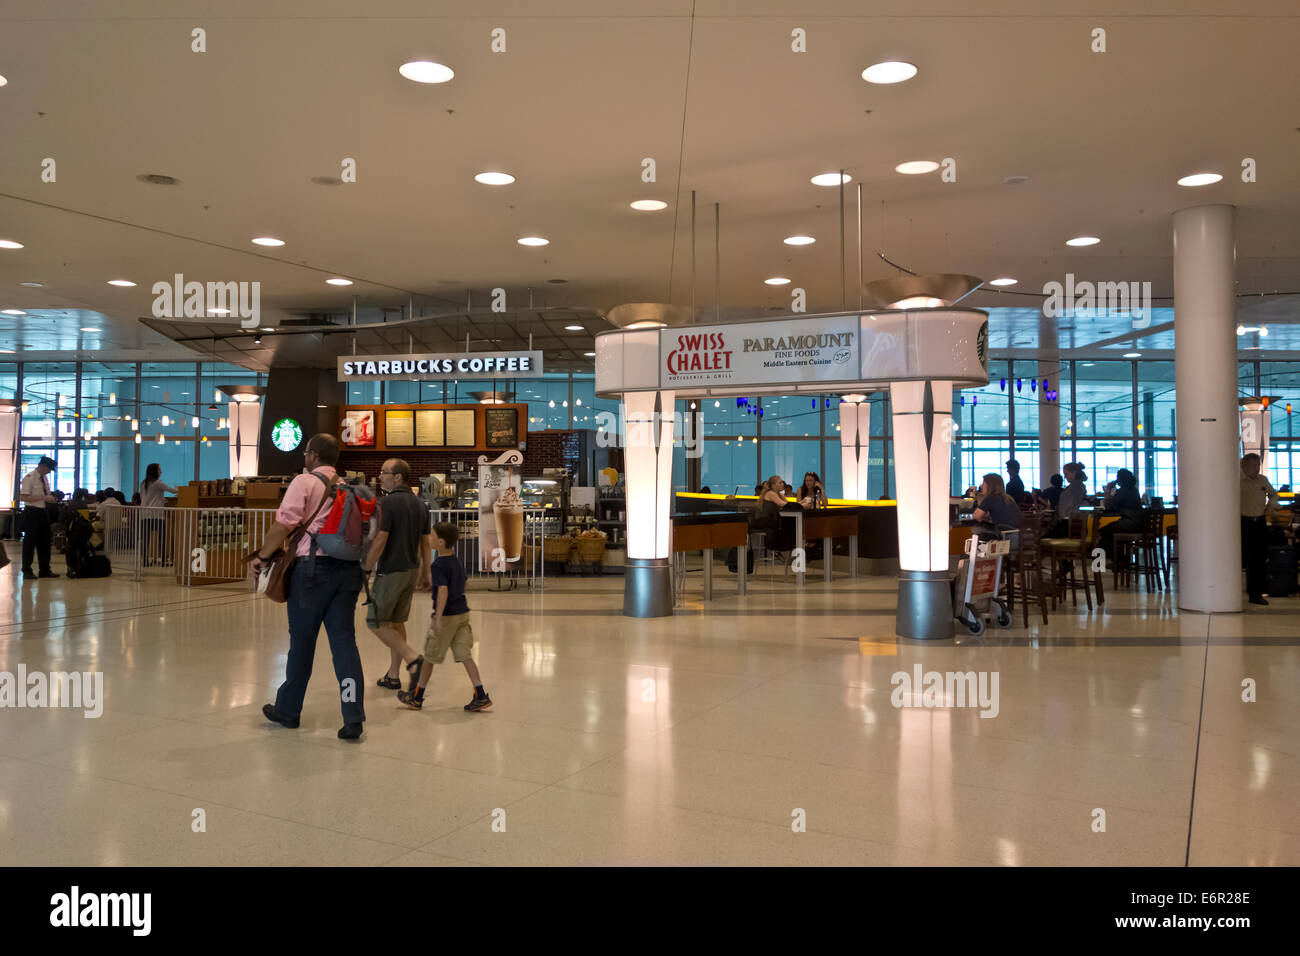 Restaurants and dining at Toronto Pearson International Airport.  Swiss Chalet and Starbucks in the airport terminal - Stock Image